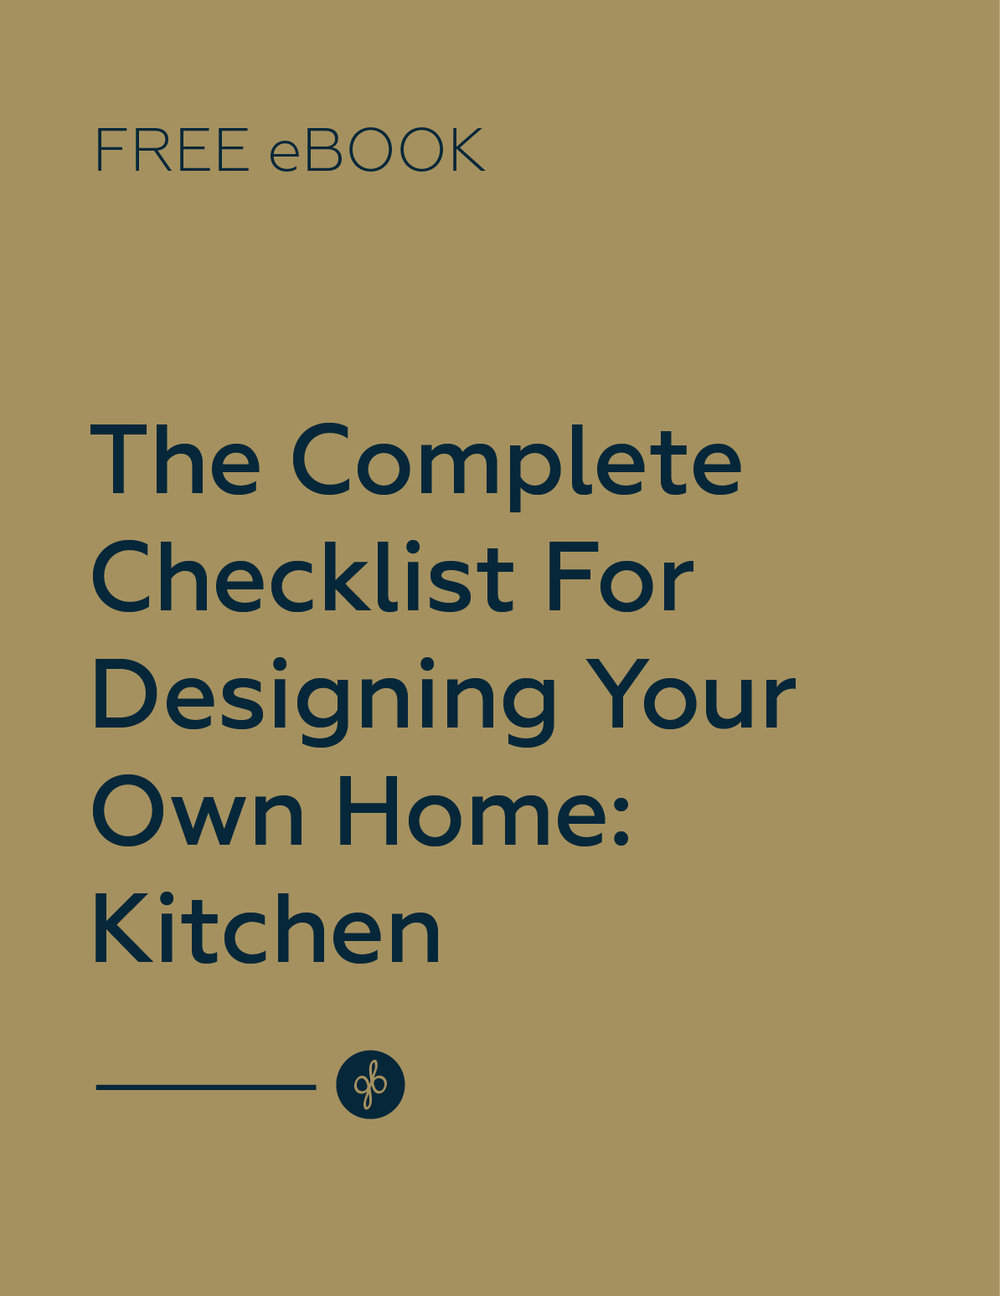 checklist for designing your own kitchen free ebook